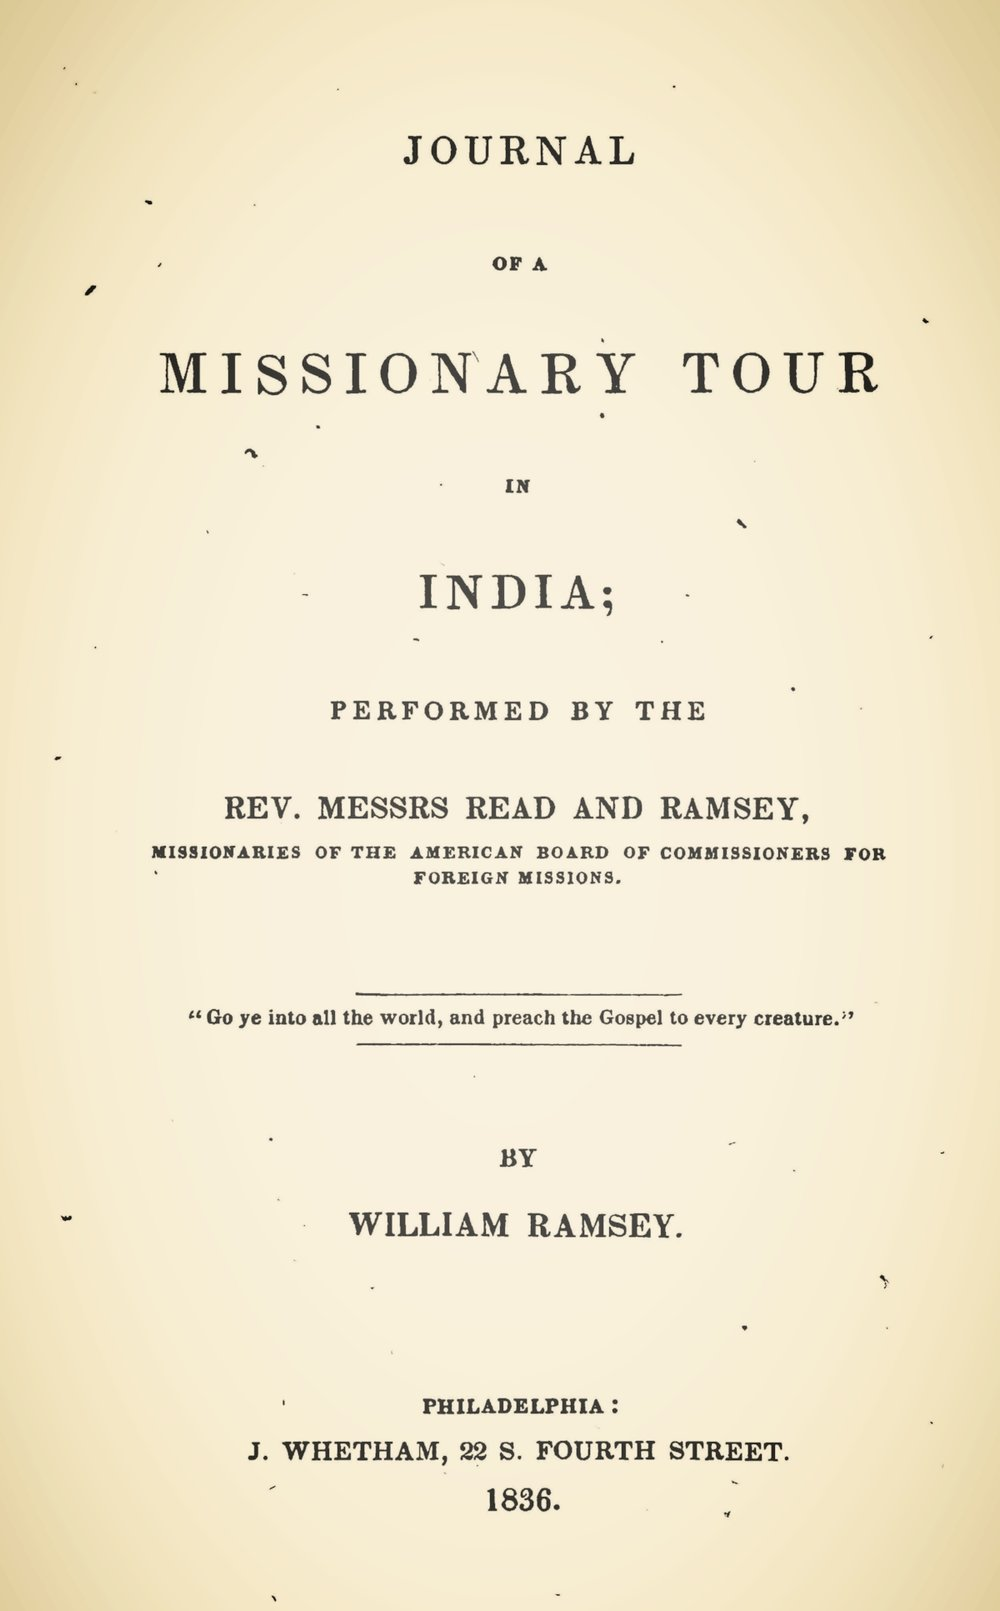 Ramsey, William, Journal of a Missionary Tour in India Title Page.jpg